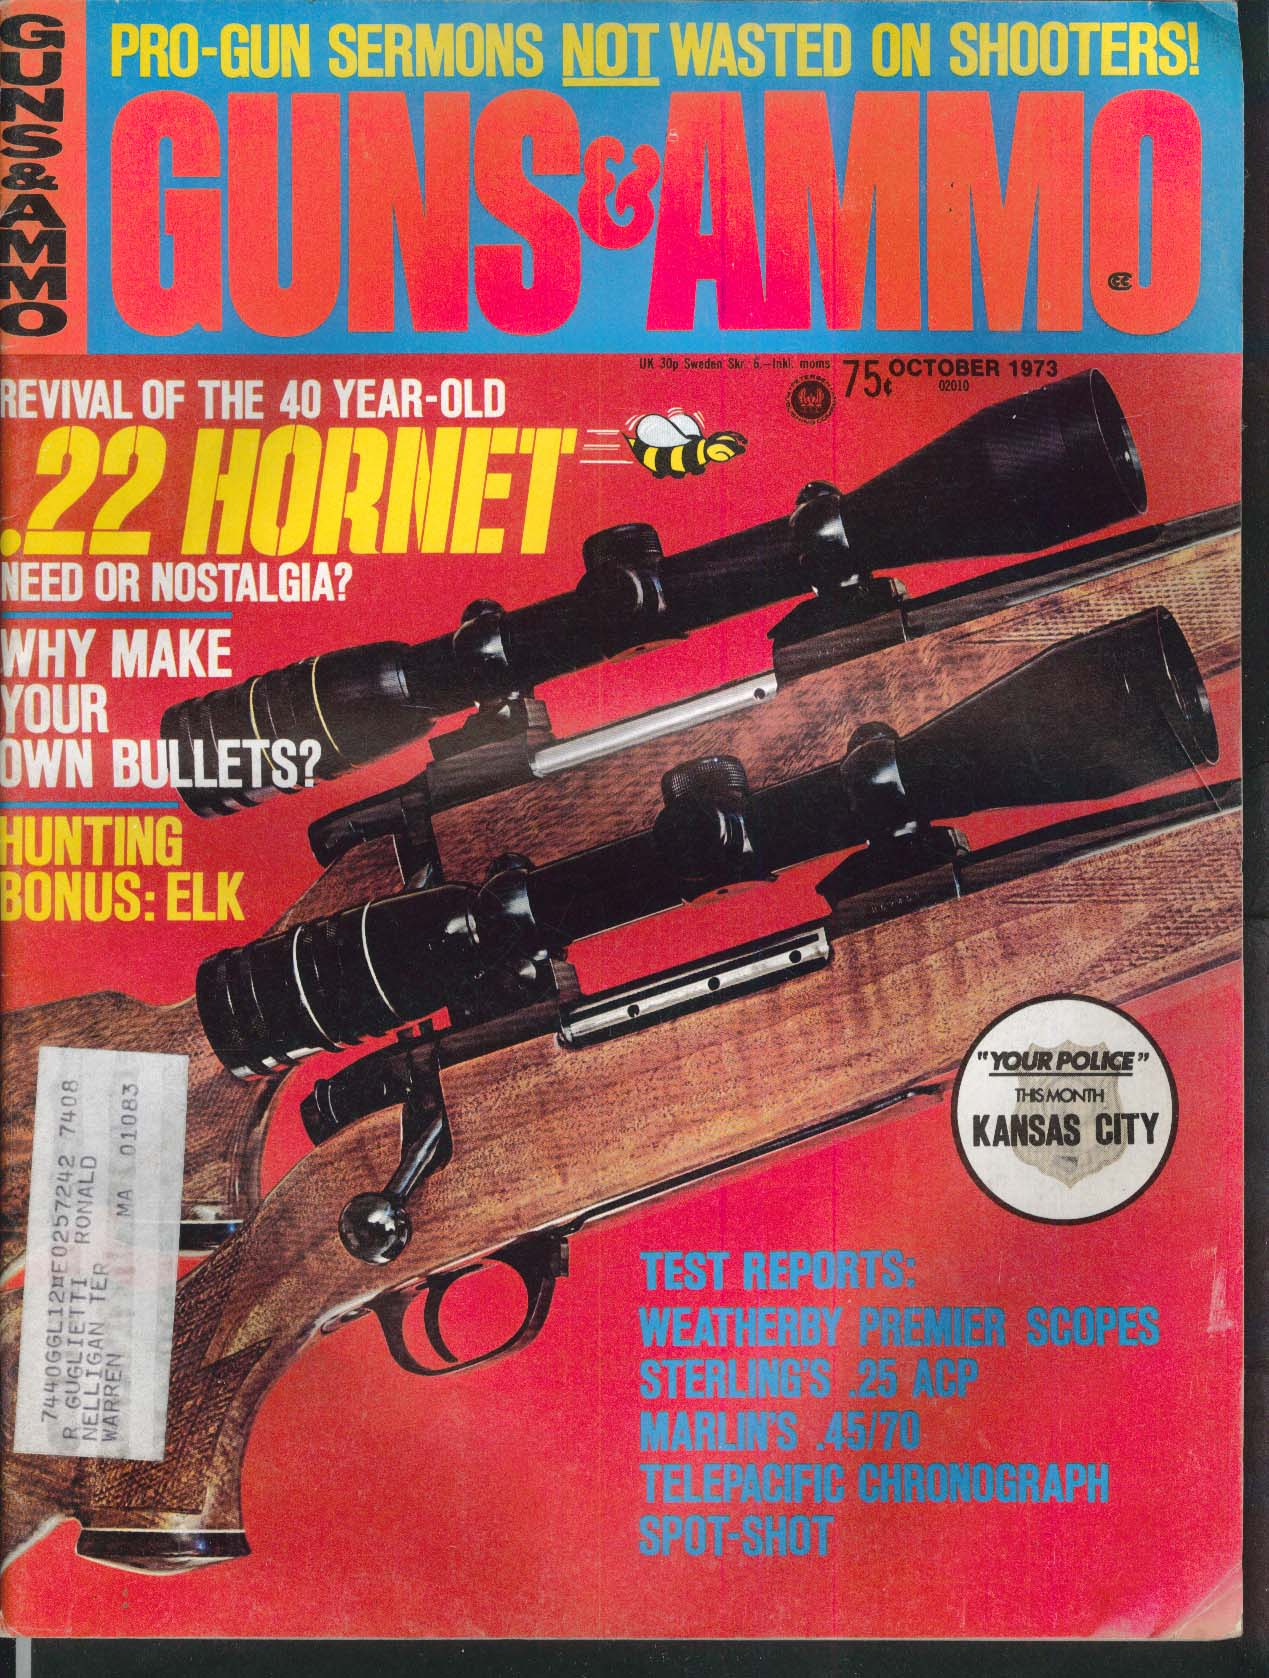 GUNS & AMMO 22 Hornet Weatherby Sterling 25 ACP Marlin 1895 10 1973